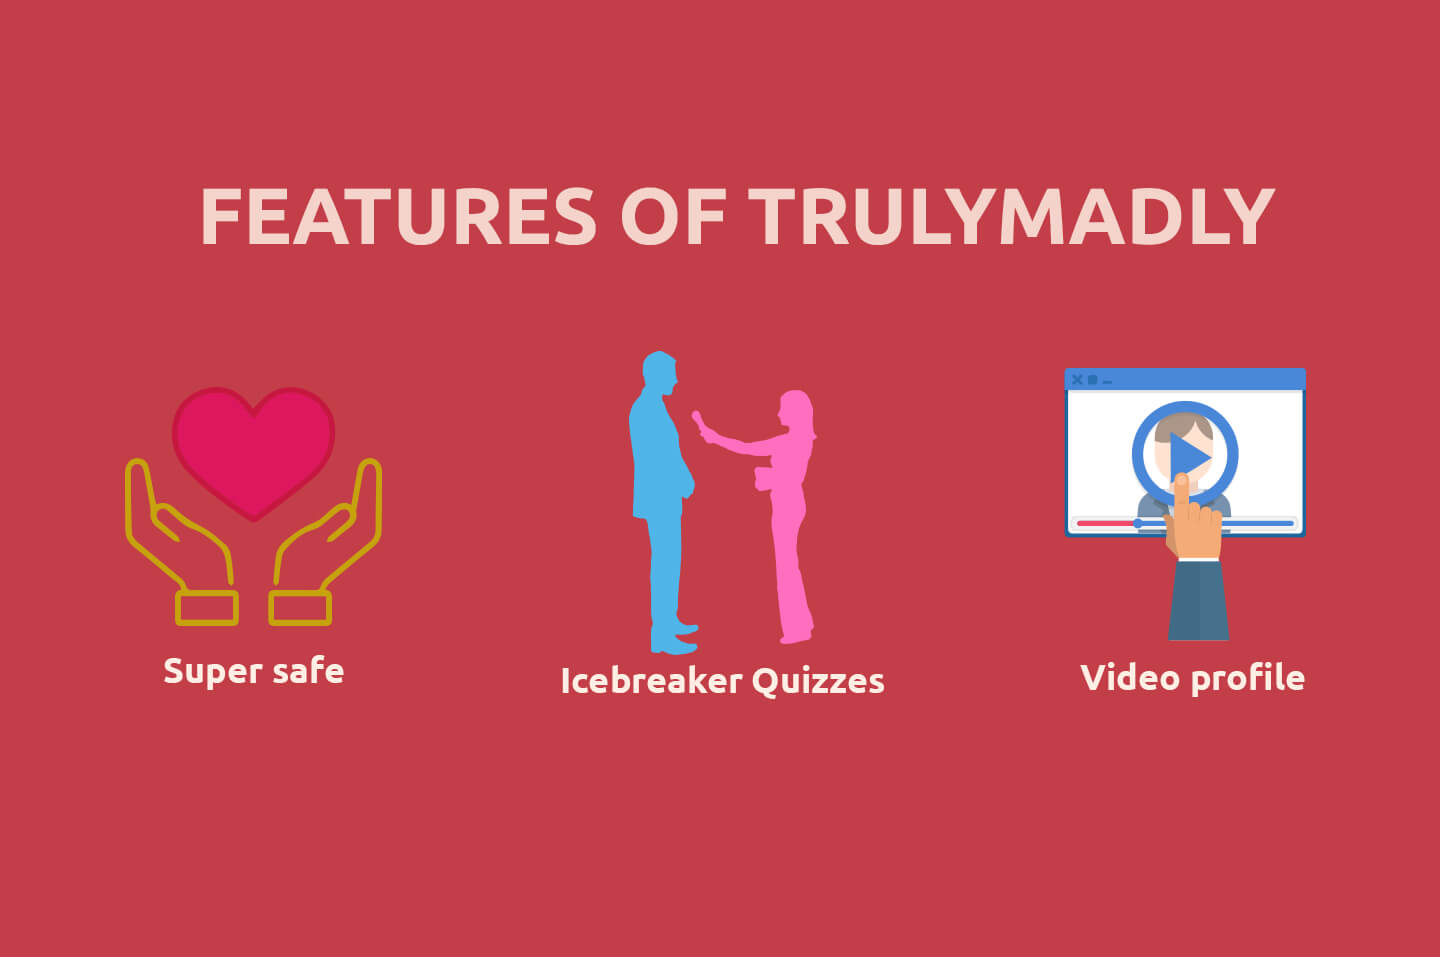 Features of trulymadly